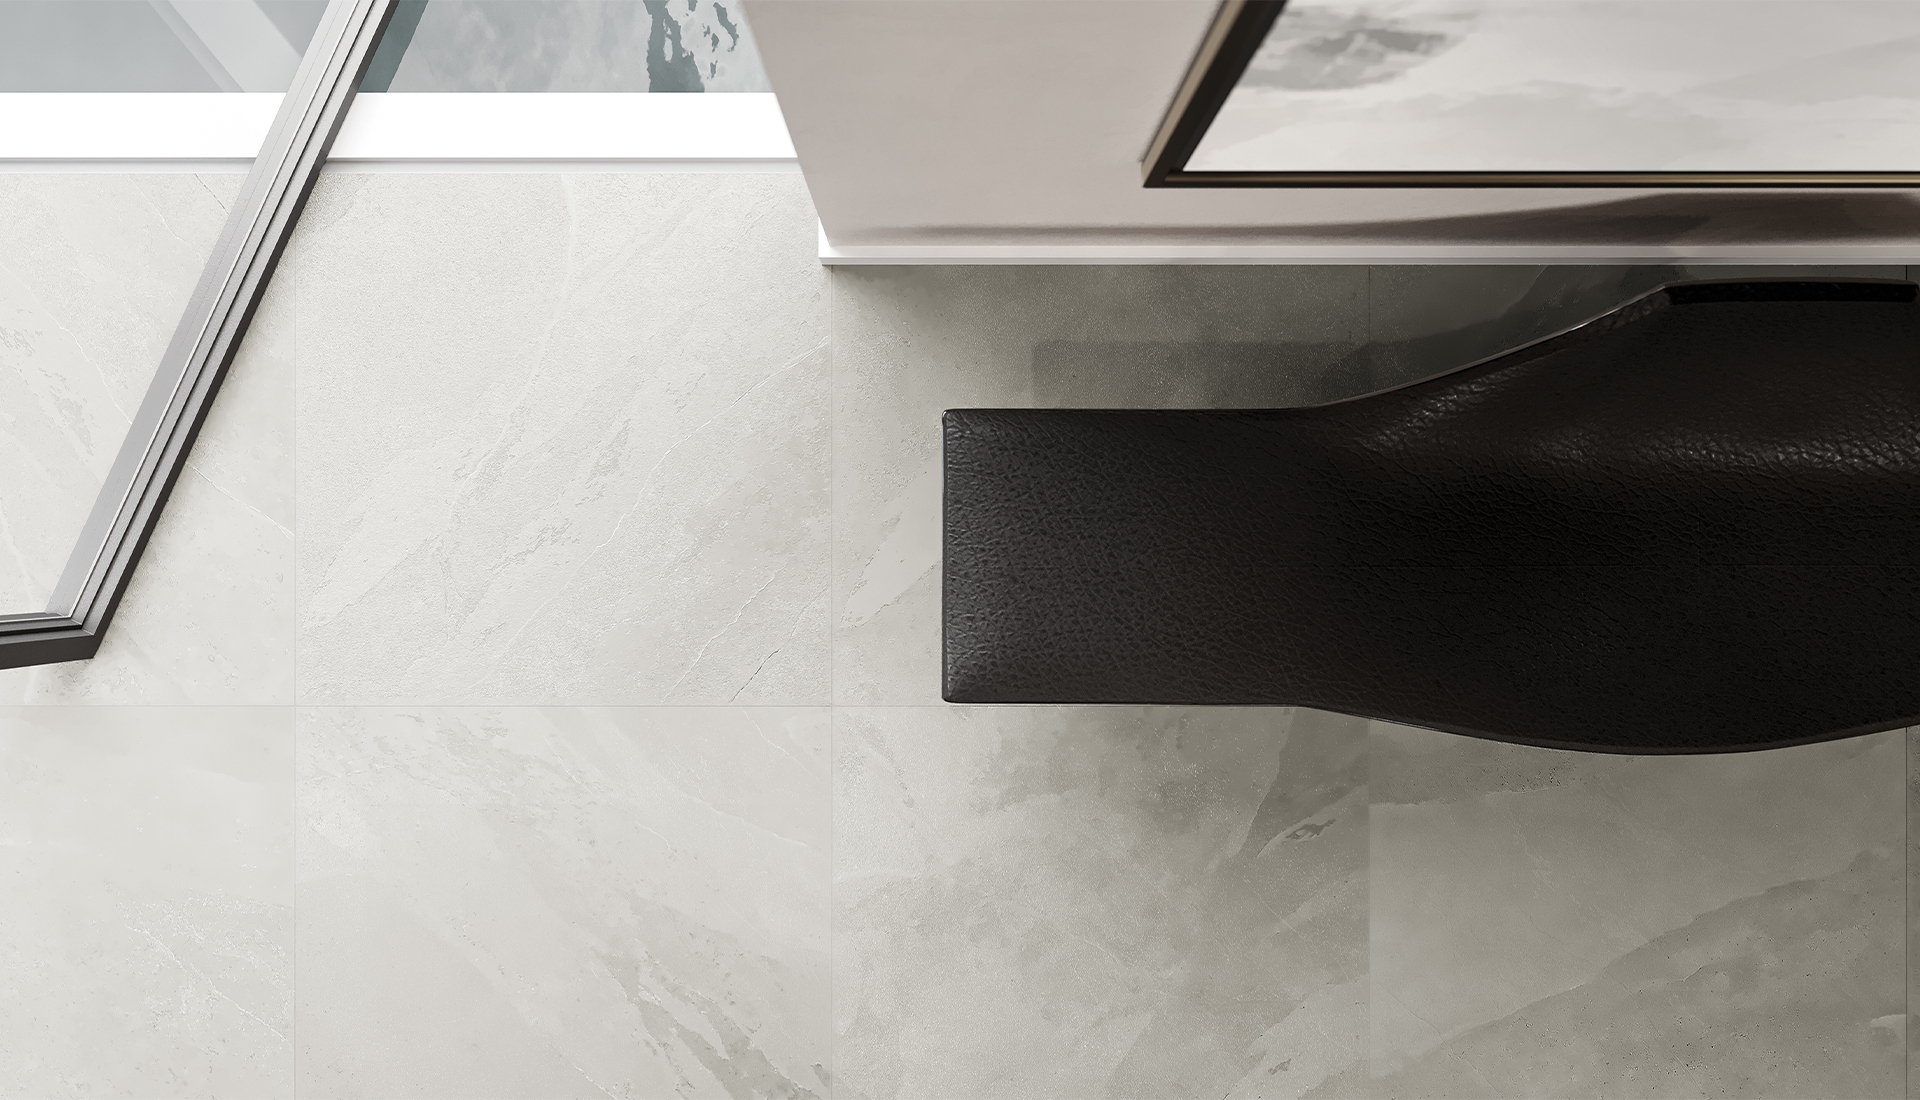 24 x 24 in / 59.5 x 59.5 cm Nord Lithium Matte Rectified Color Body Porcelain Tile